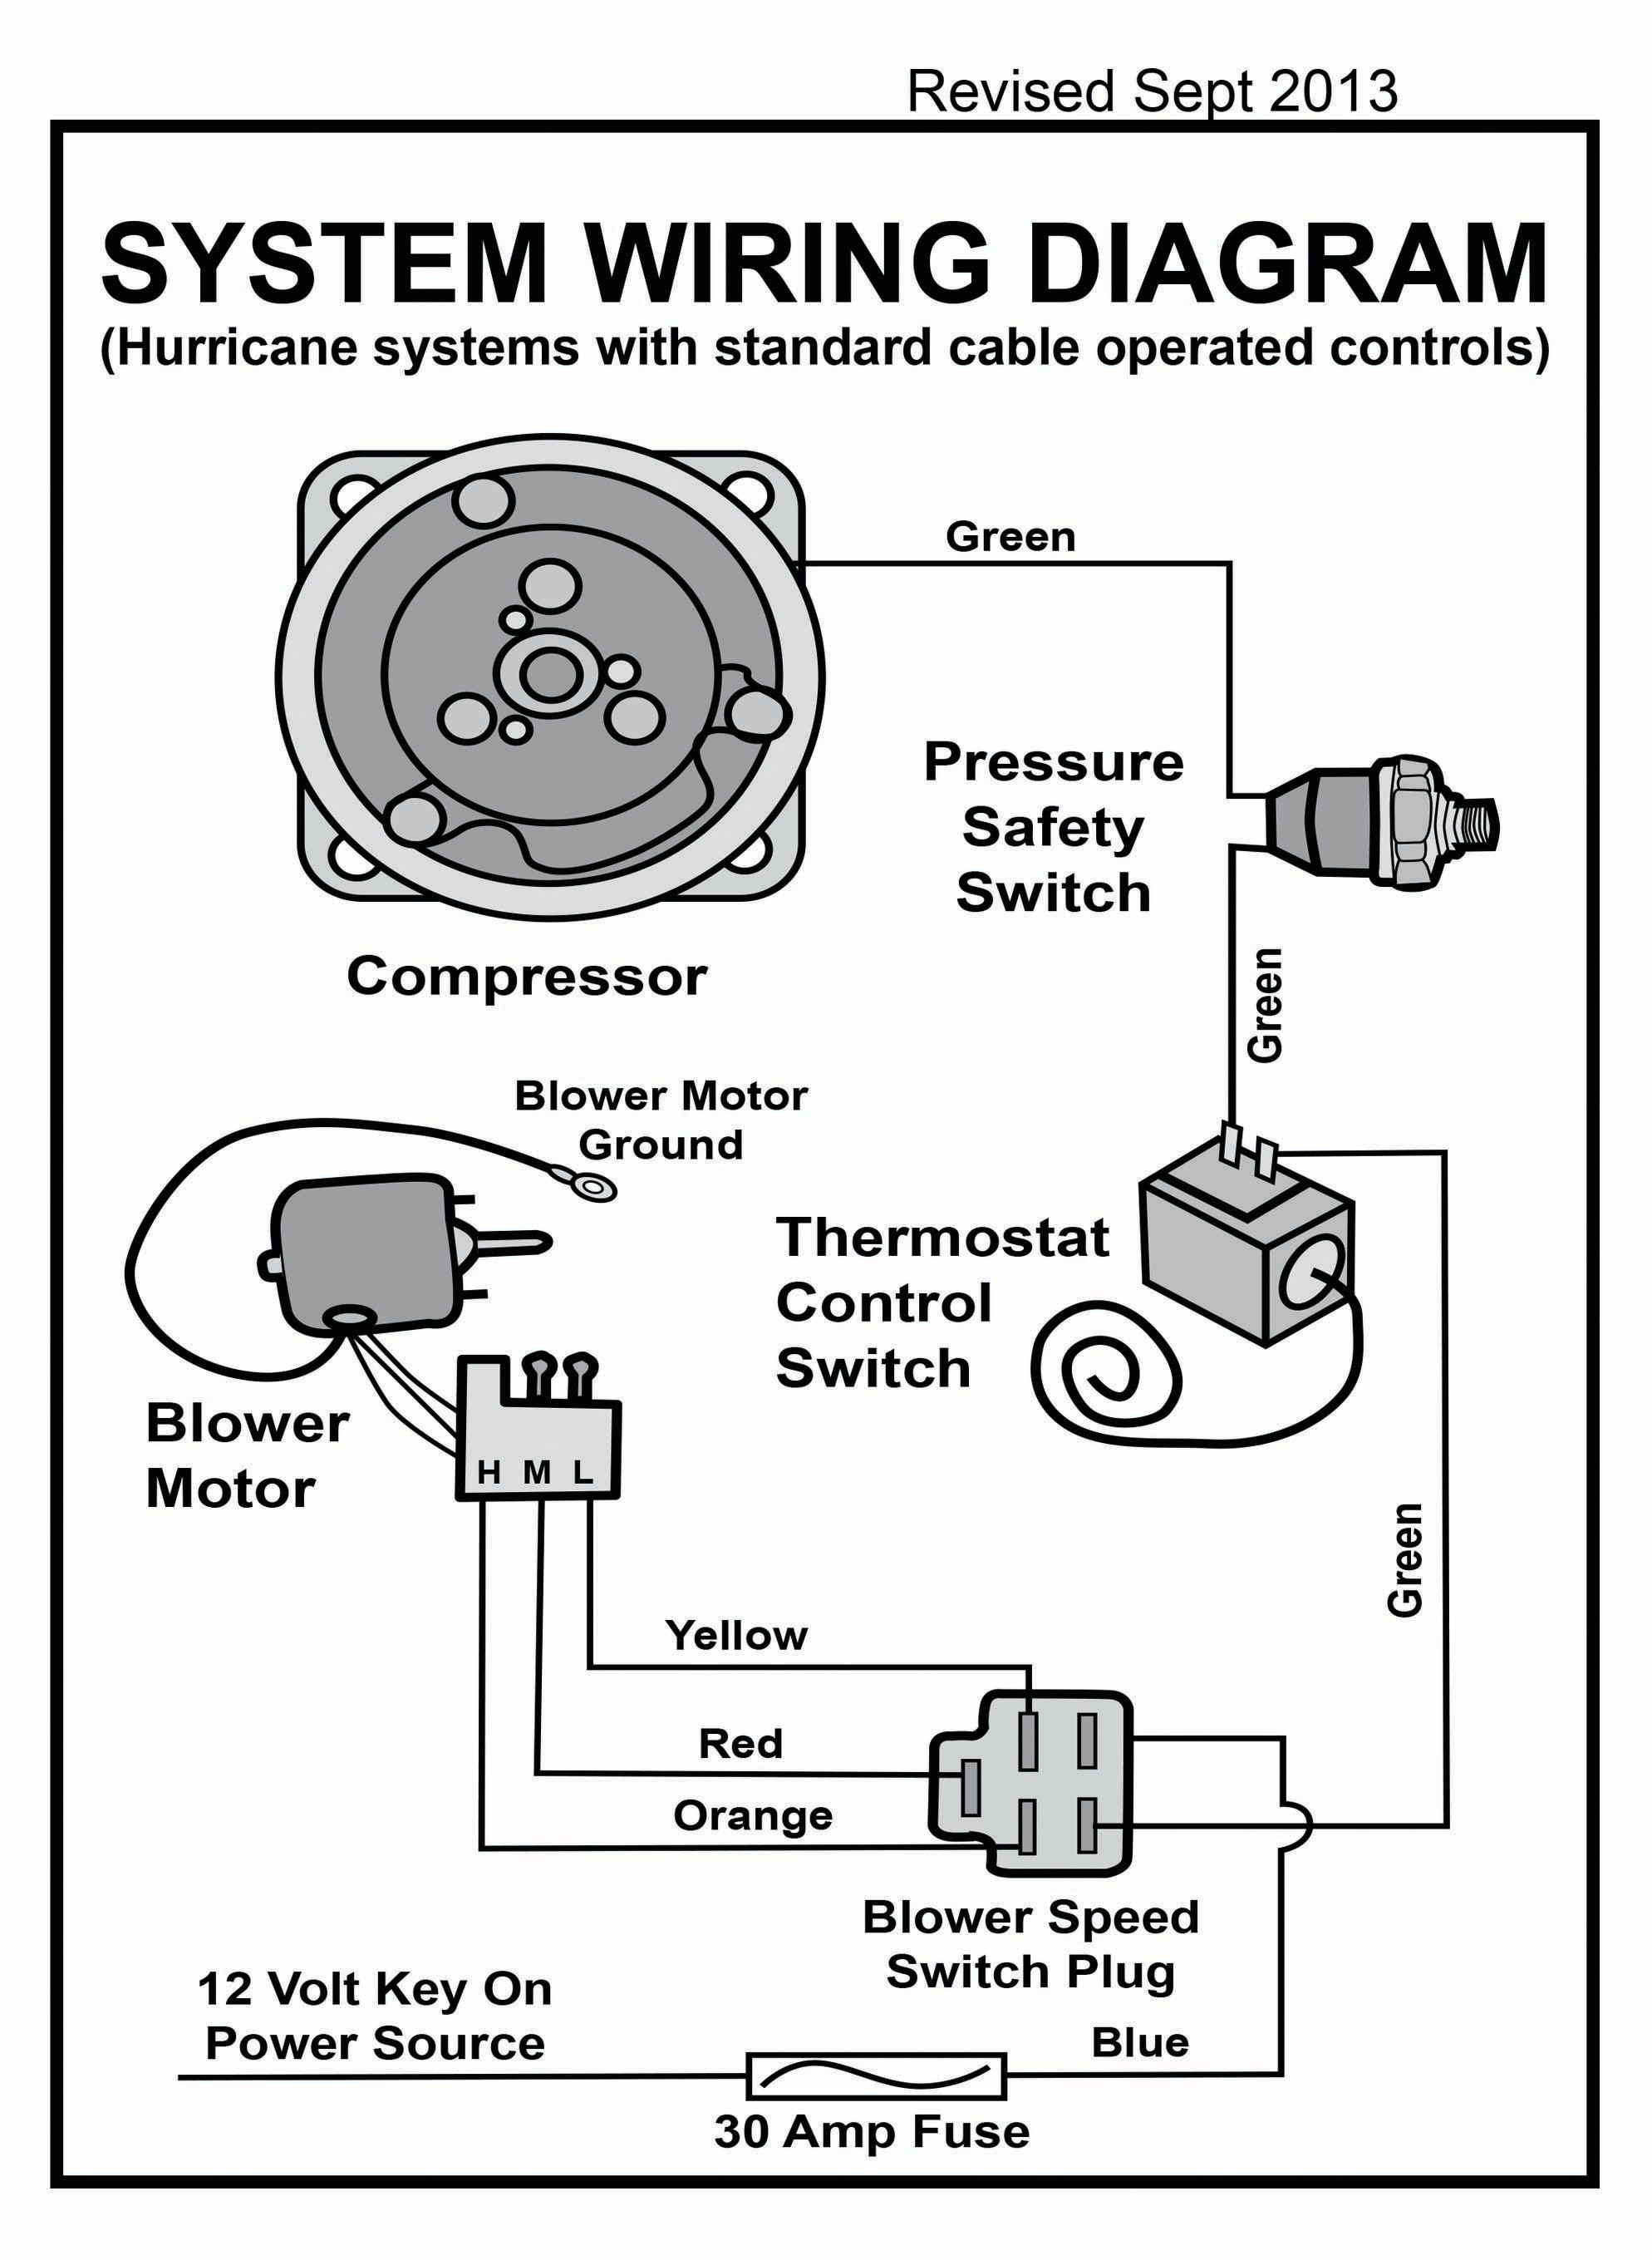 installing old air products u0027 hurricane heat u0026 a c hot rod networka binary safety switch shown is included to protect the system a trinary switch  [ 1988 x 2719 Pixel ]